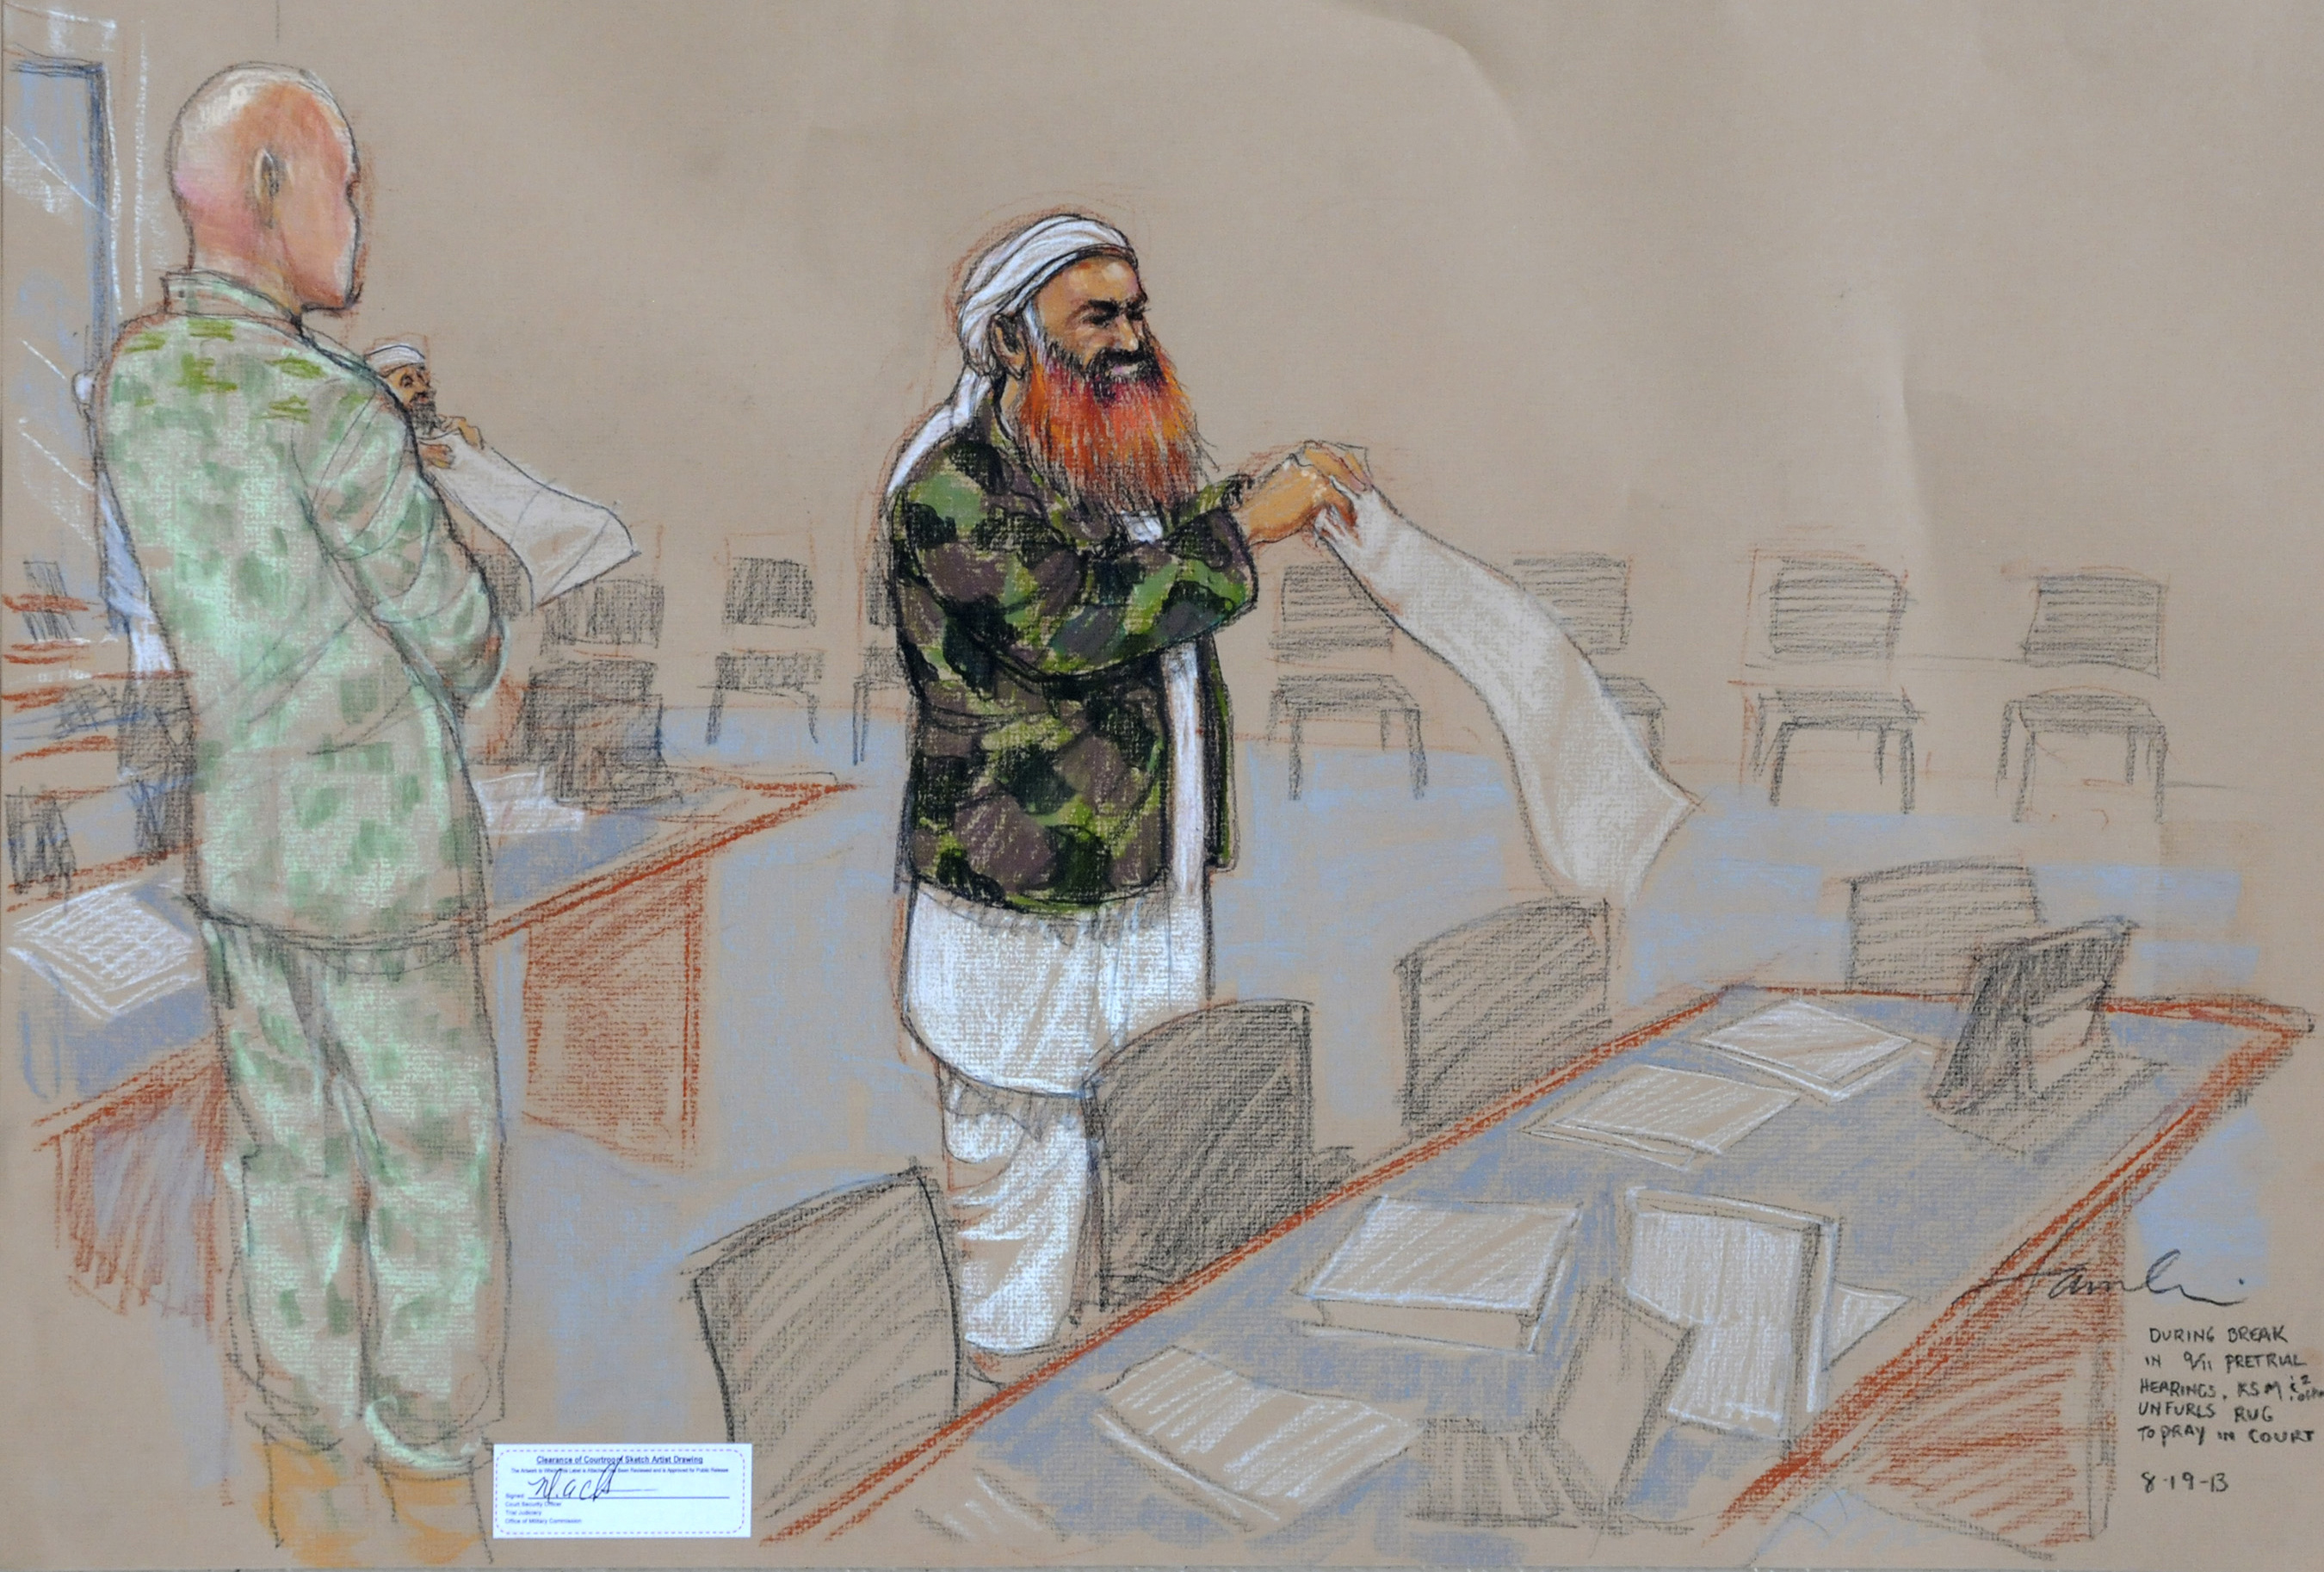 In this pool photo of a sketch by courtroom artist Janet Hamlin and reviewed by the U.S. Department of Defense, the self-proclaimed terrorist mastermind Khalid Sheikh Mohammed, with his gray beard streaked with reddish-orange dye, unfurls a prayer rug during a break in the proceedings of the pretrial hearings at the Guantanamo Bay U.S. Naval Base in Cuba on Aug. 19, 2013.